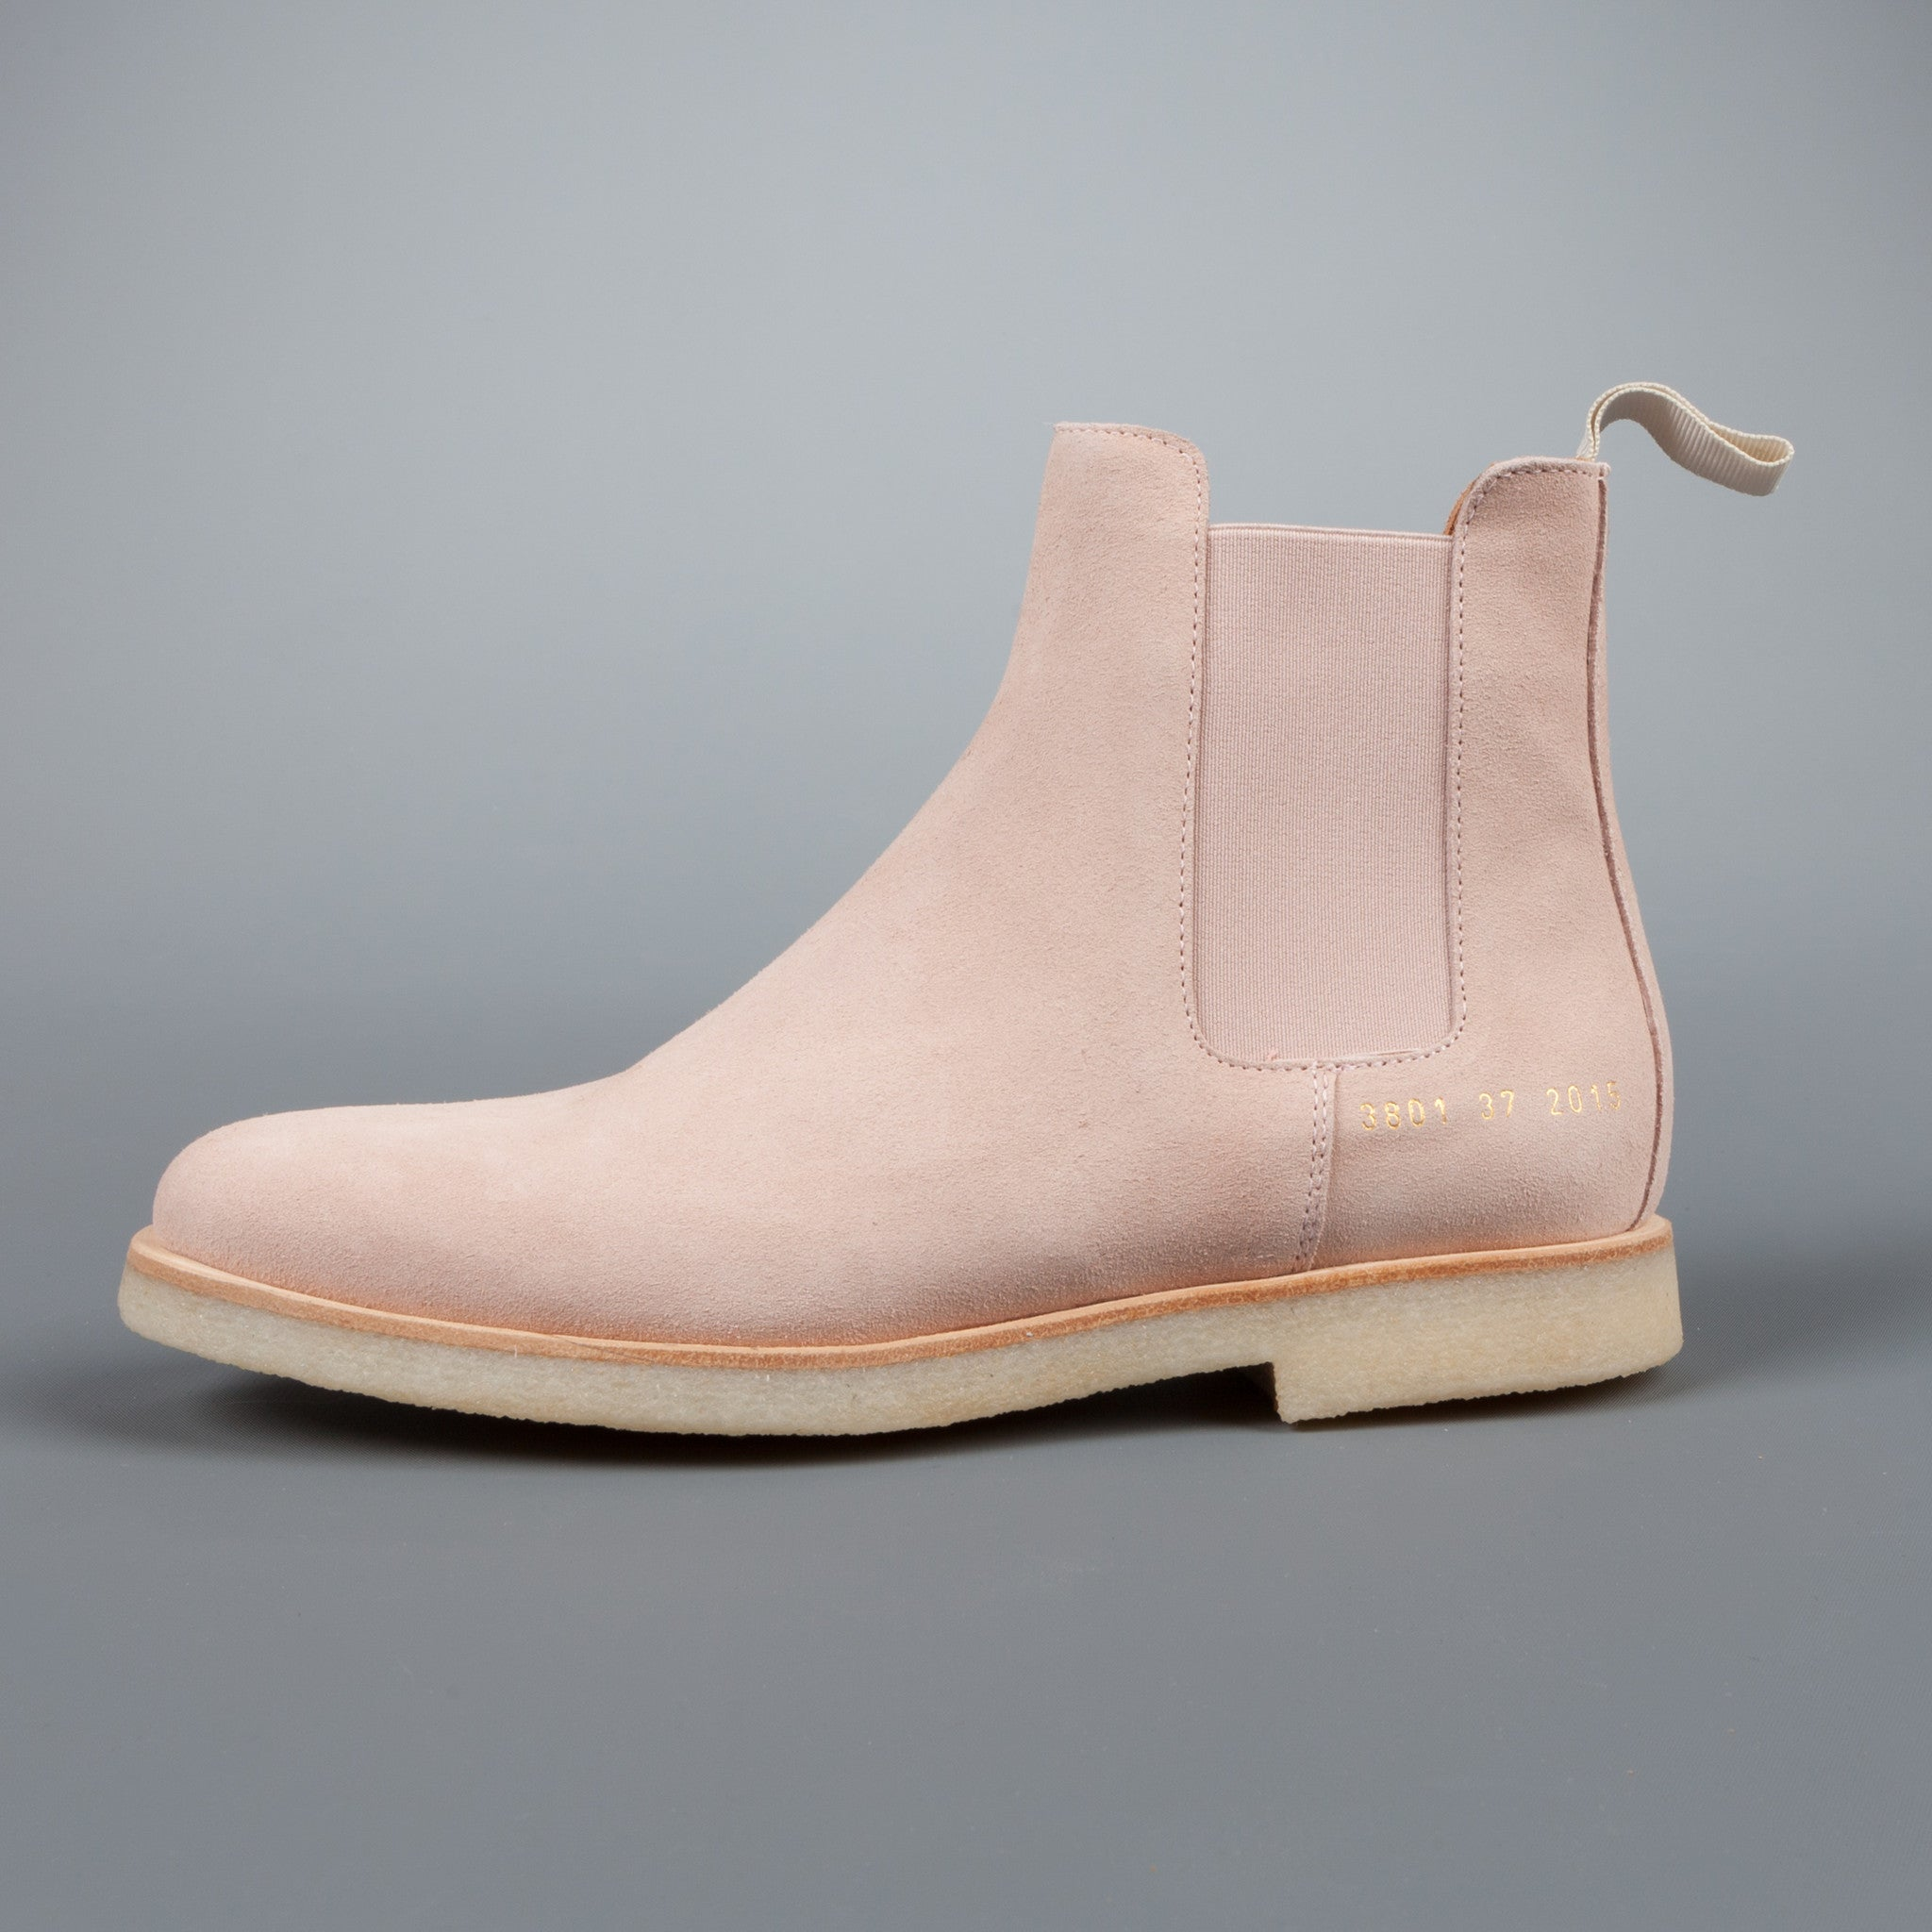 woman by common projects chelsea boot in blush suede frans boone store. Black Bedroom Furniture Sets. Home Design Ideas